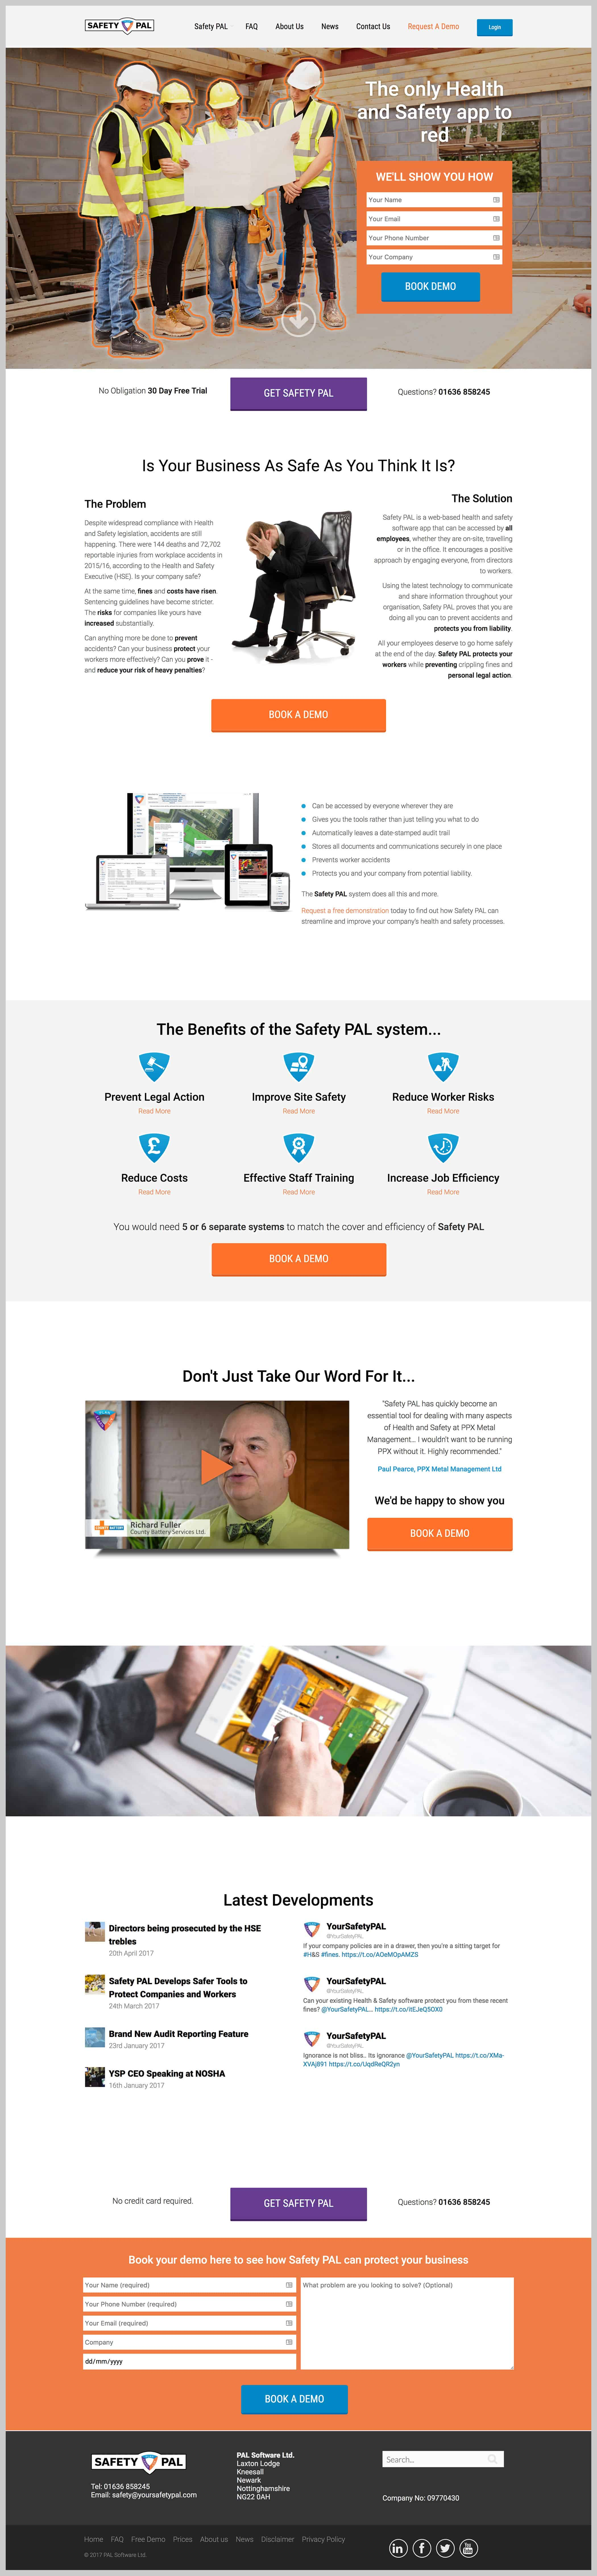 Safety PAL home page website design